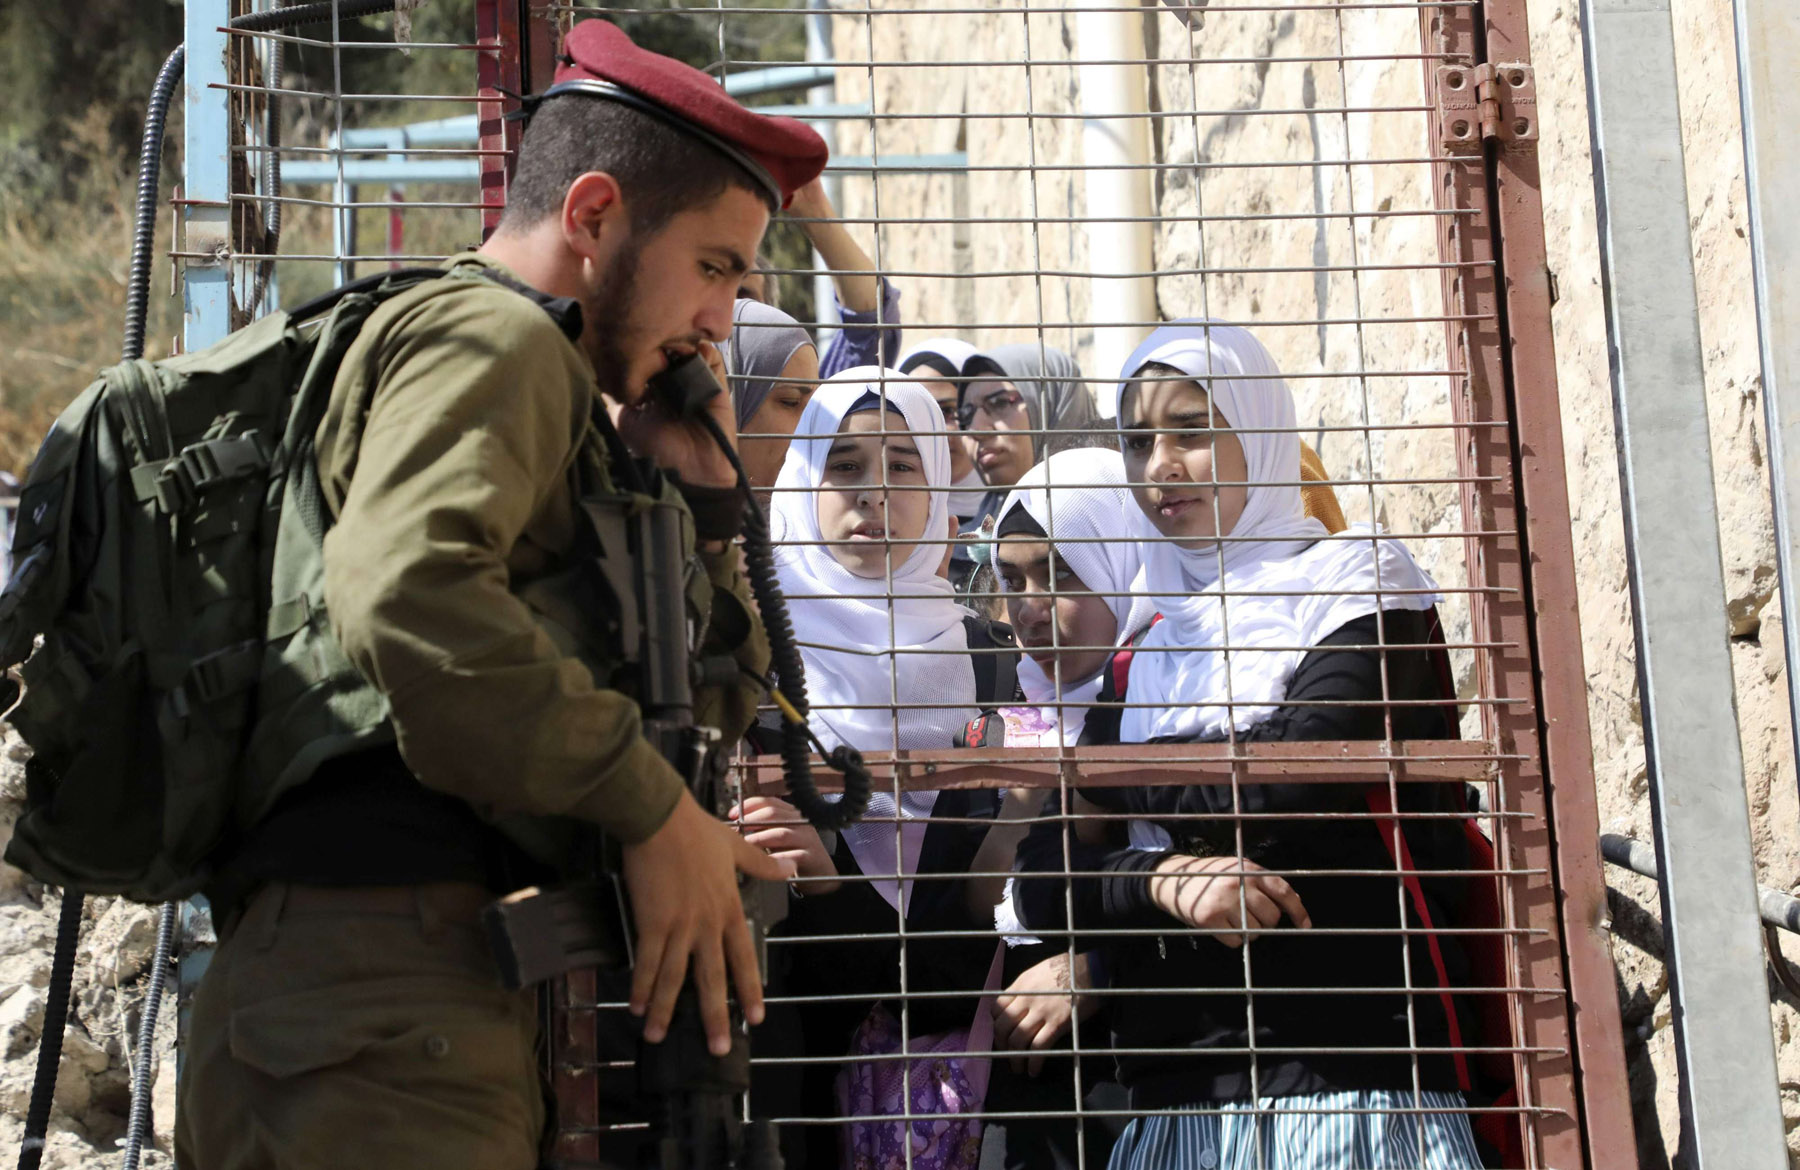 Palestinian pupils and teachers wait by a closed iron gate as an Israeli soldier gets an authorisation to open it near al-Shuhada street in the West Bank town of Hebron, September 4. (AFP)